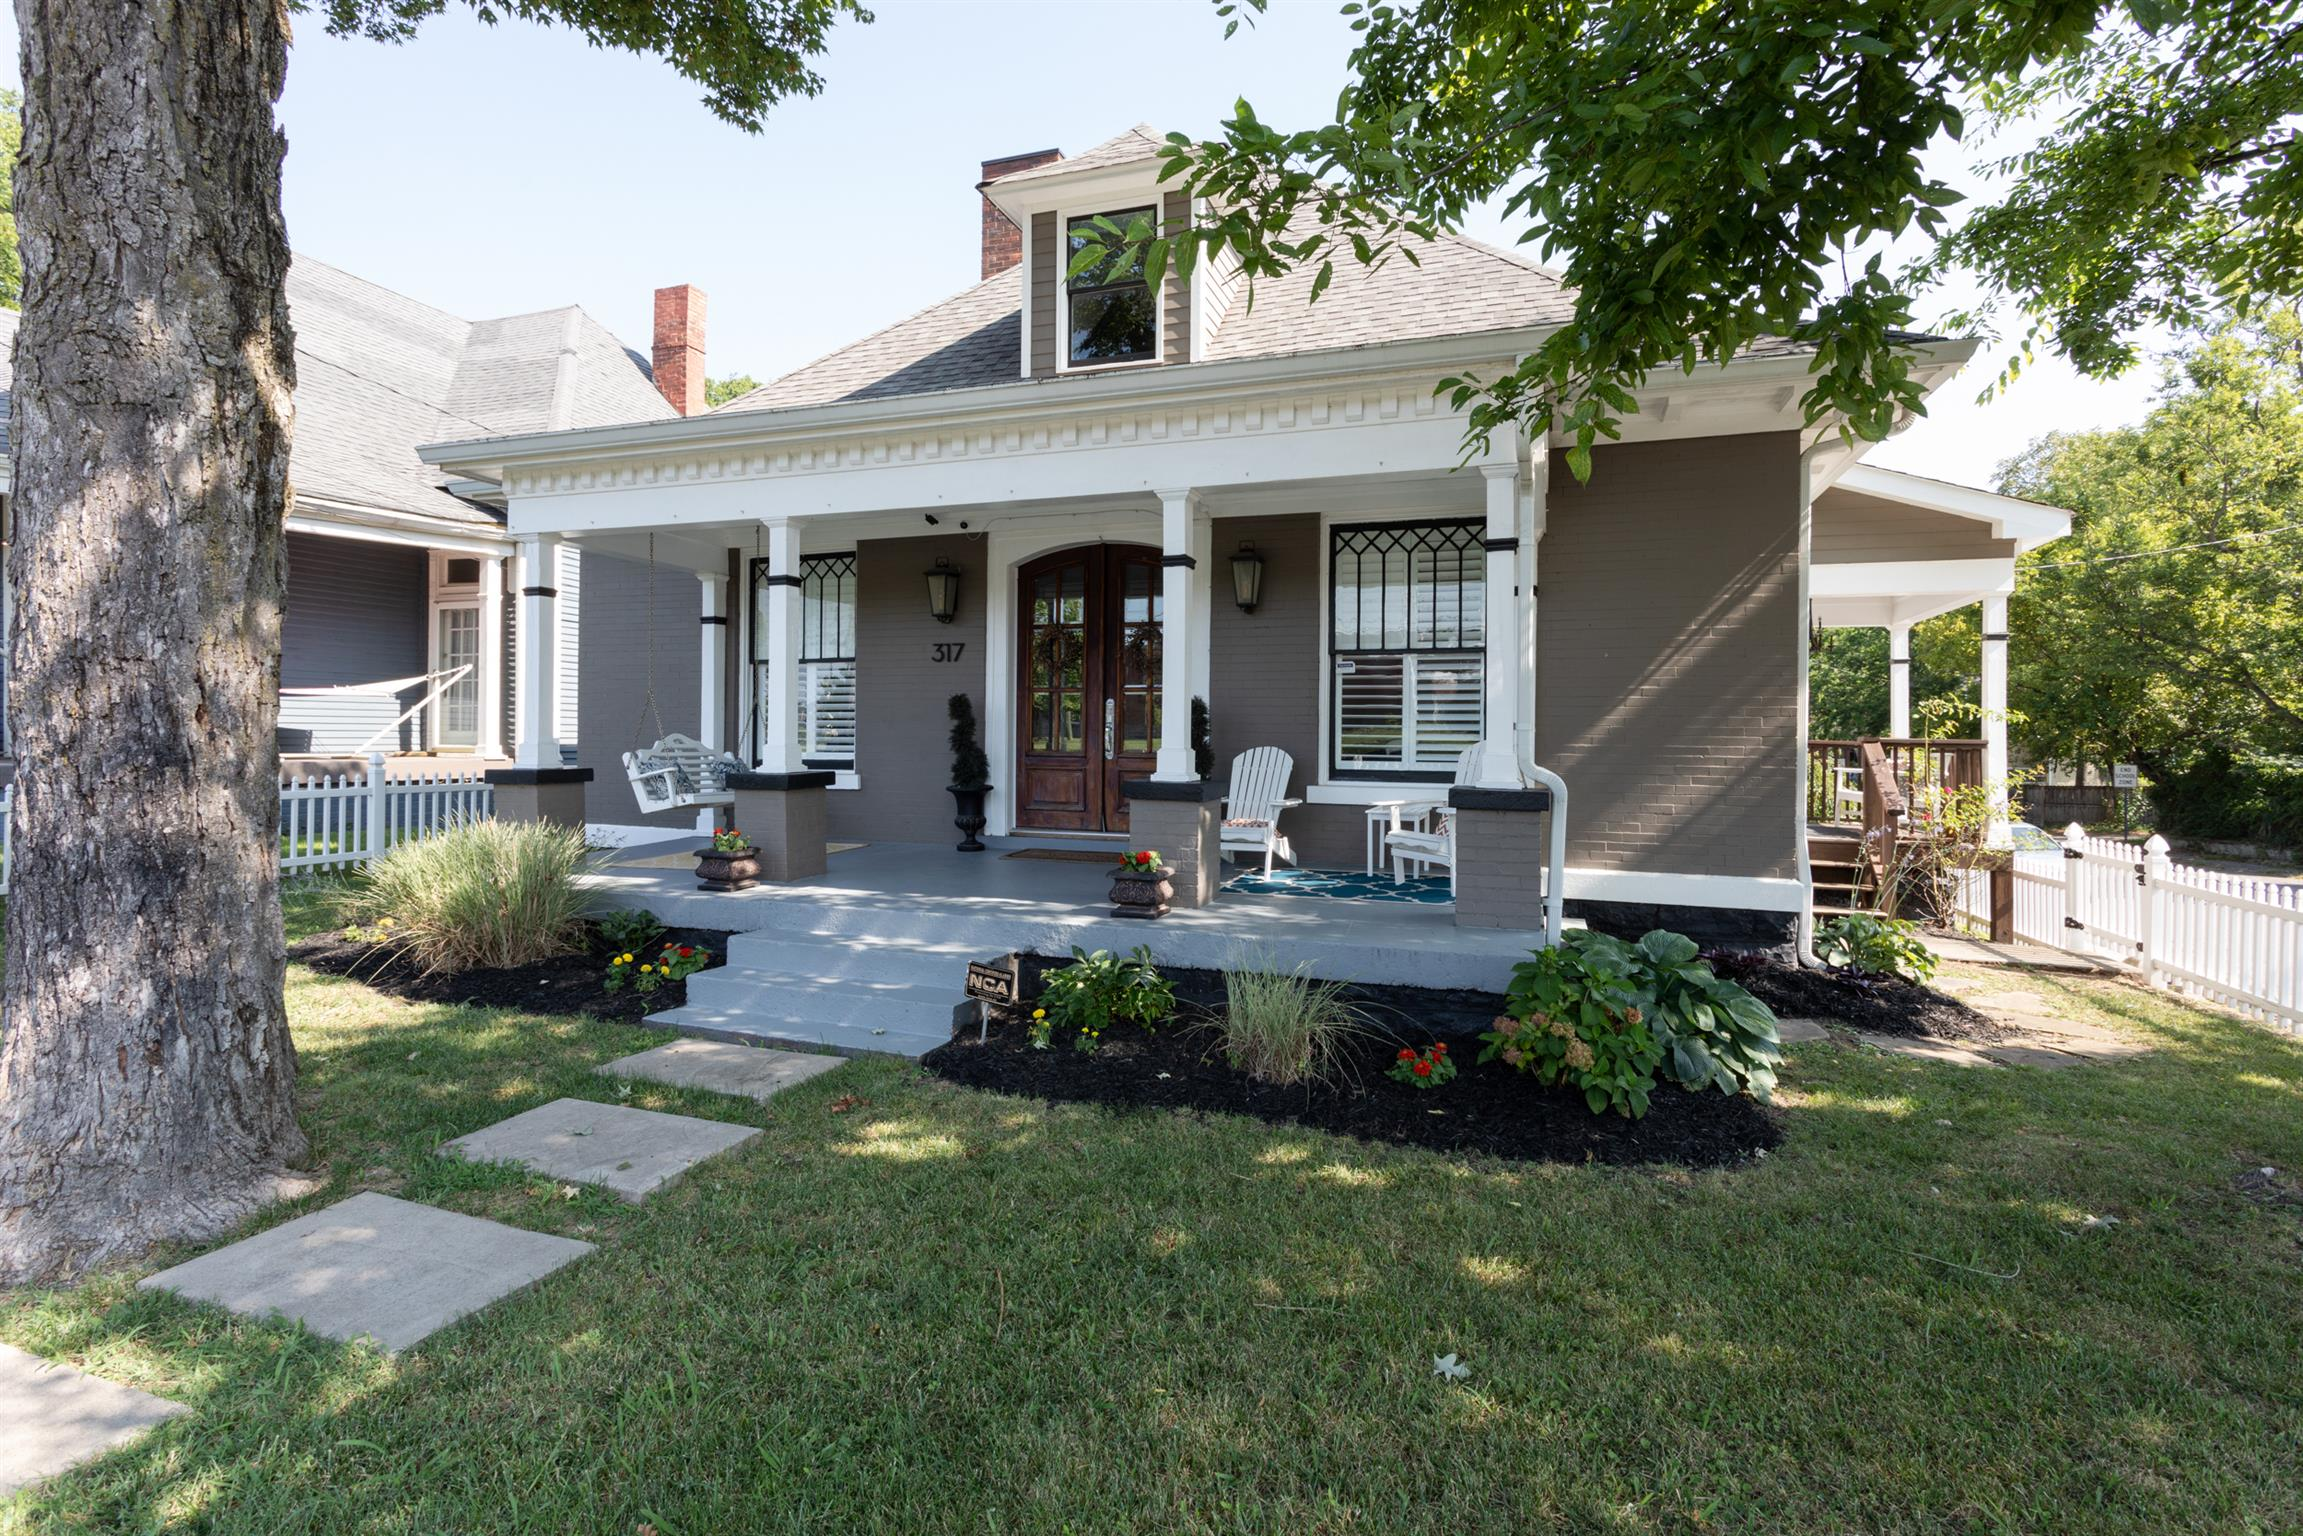 317 Cleveland St, Nashville, TN 37207 - Nashville, TN real estate listing